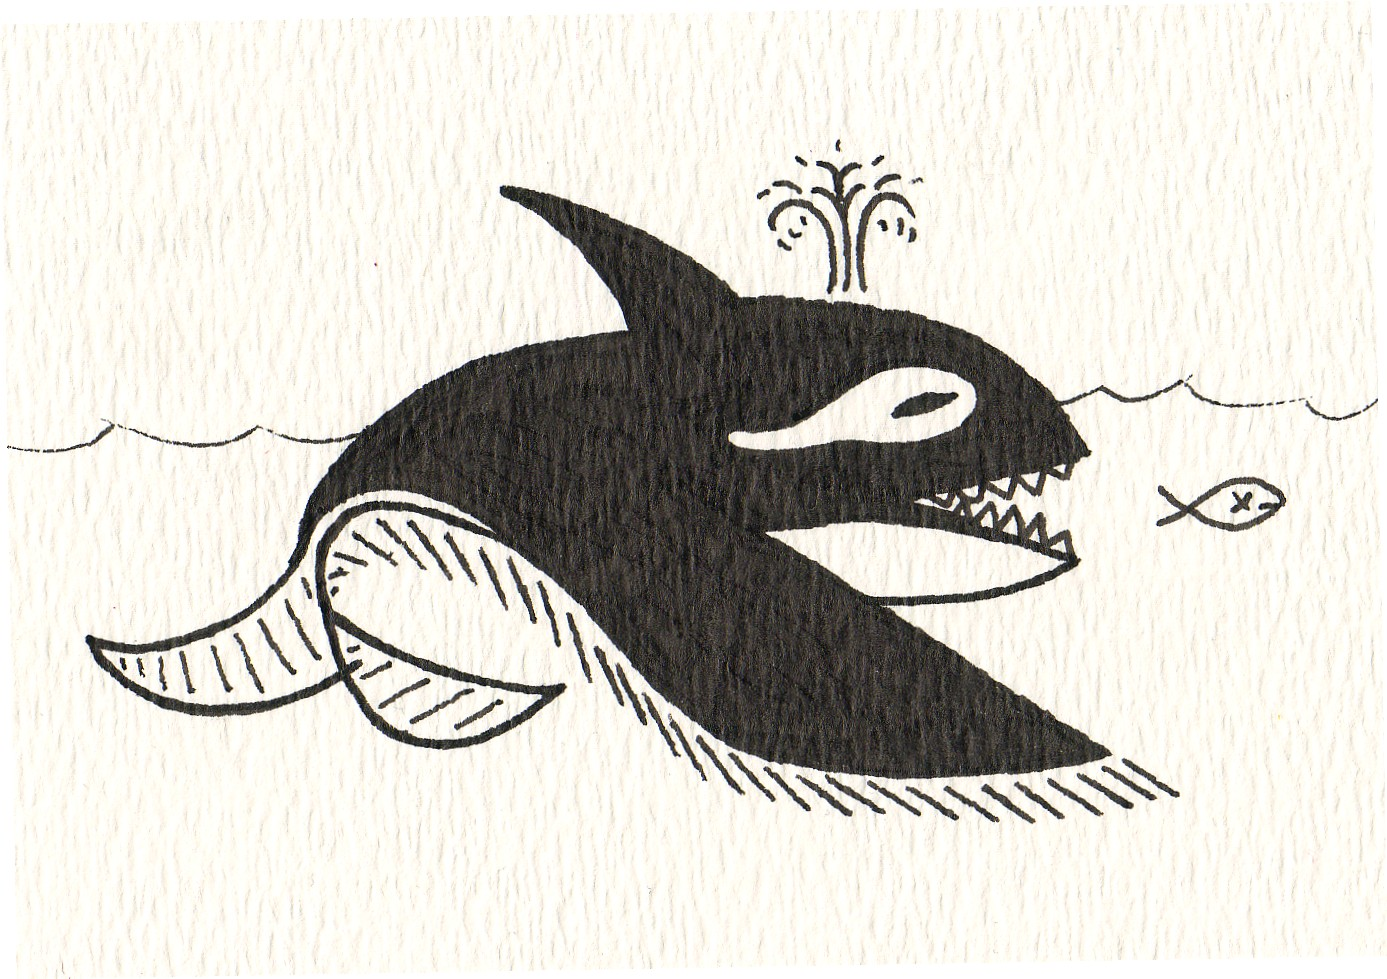 Hungry Orca